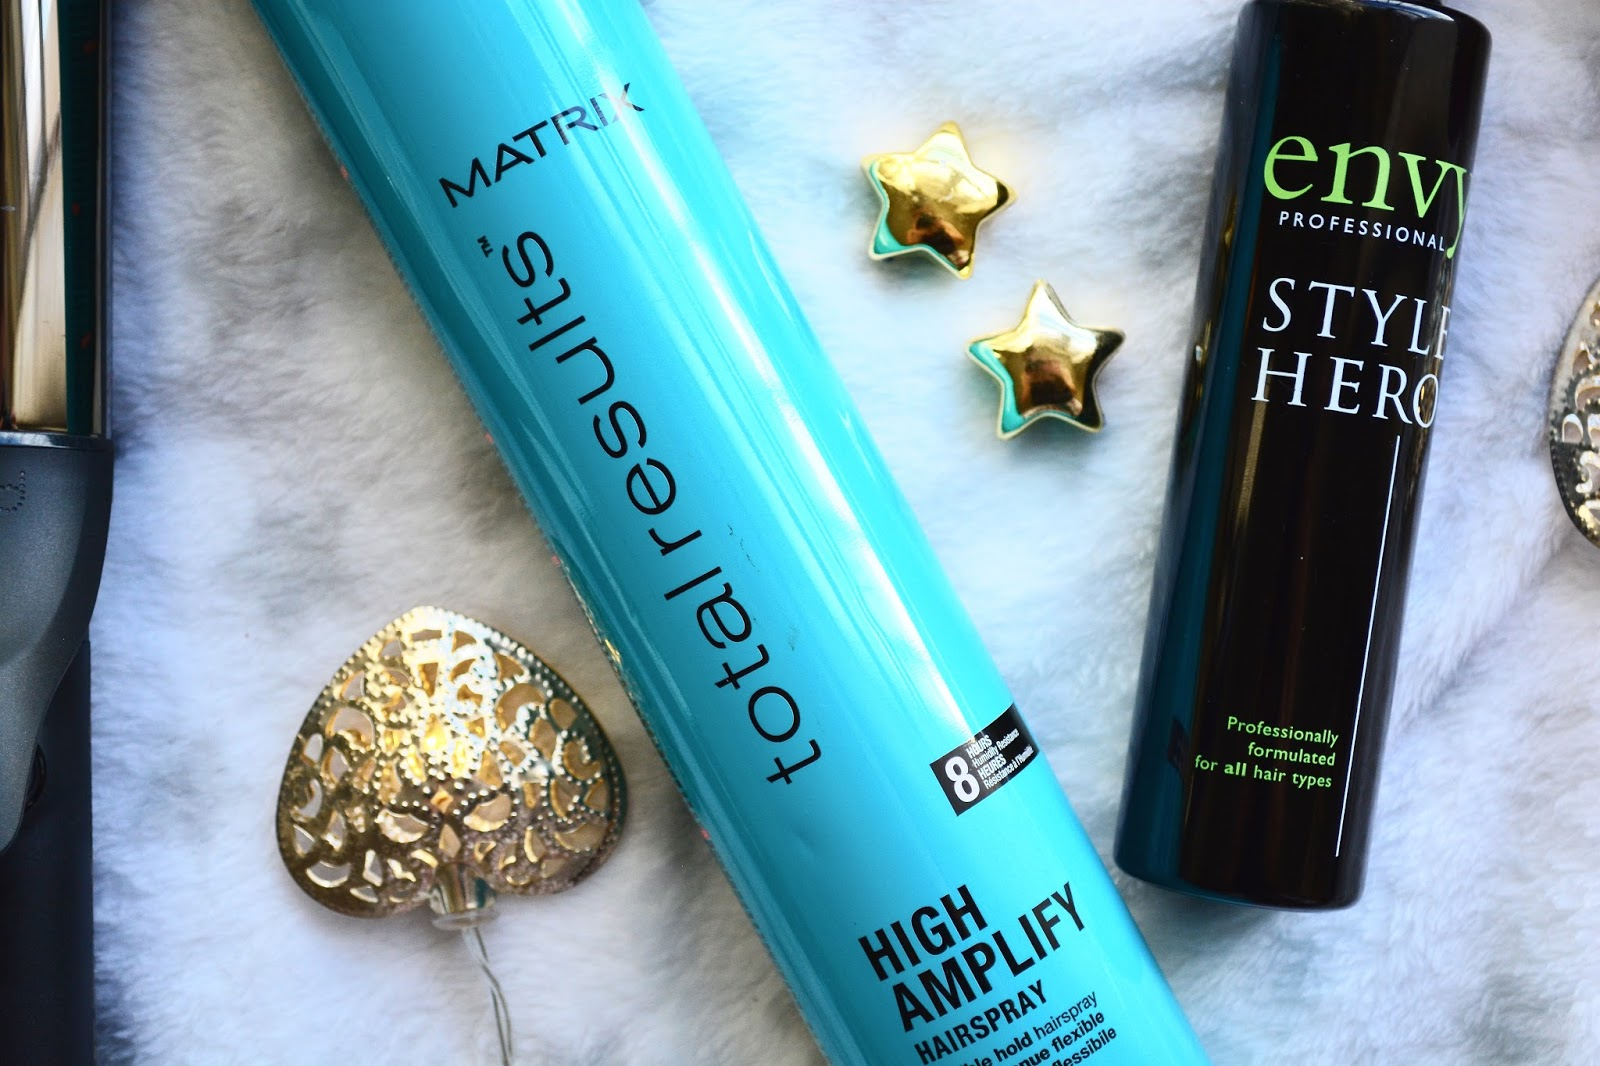 Charles Worthington Texturising Spray, GHD, ghd curve, Hair, Hairstyle, Matrix Hair, My Top 5 Hair Products For The Party Season,